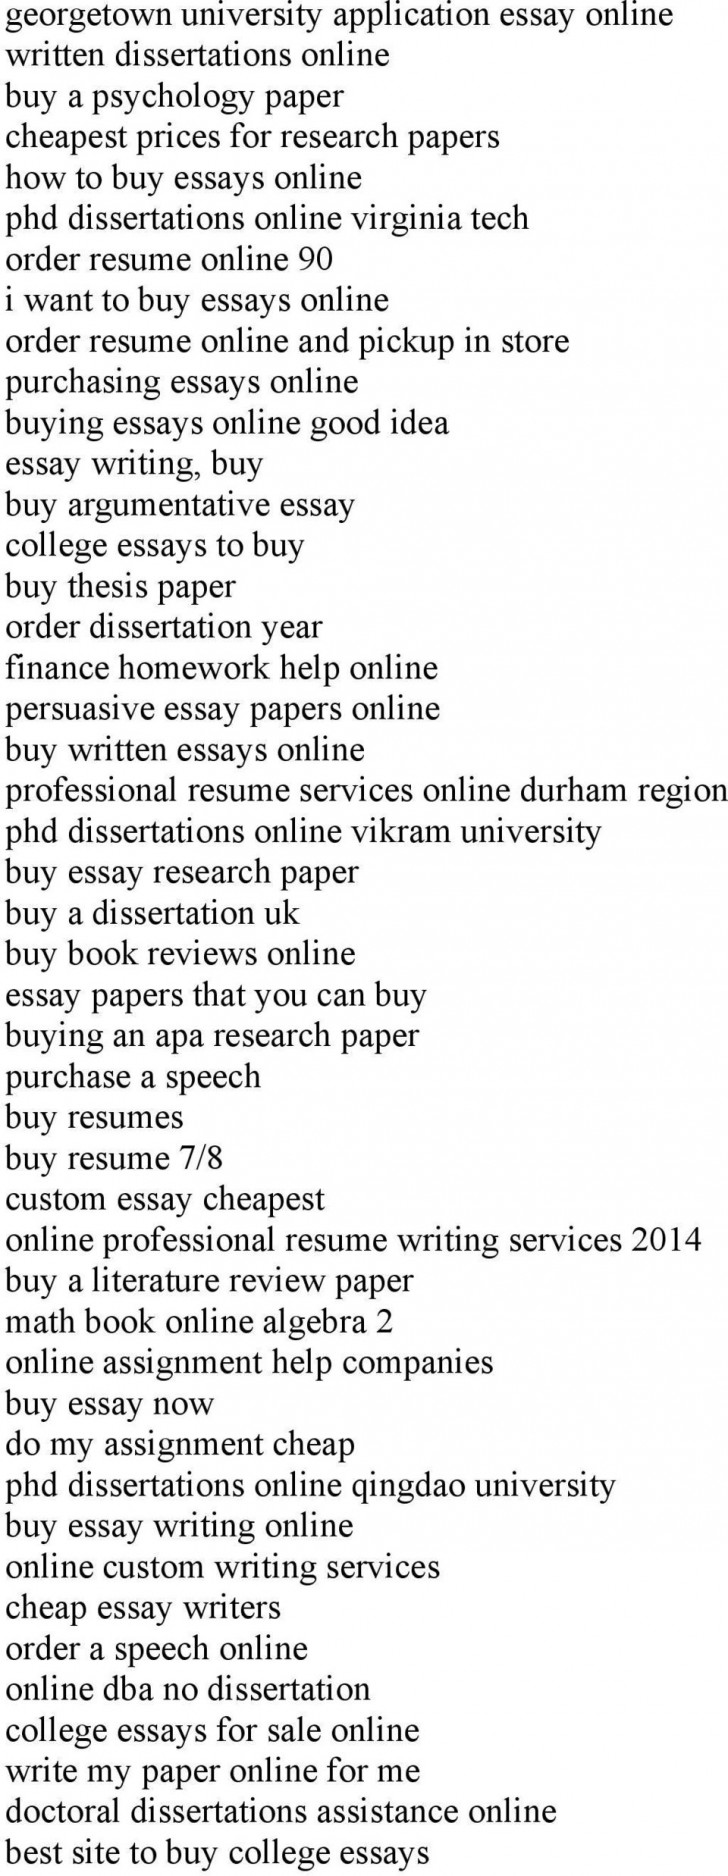 004 Research Paper Buying Page 4 Best A Online Behavior Impulse Impact Of Advertising On Consumer Behaviour 728